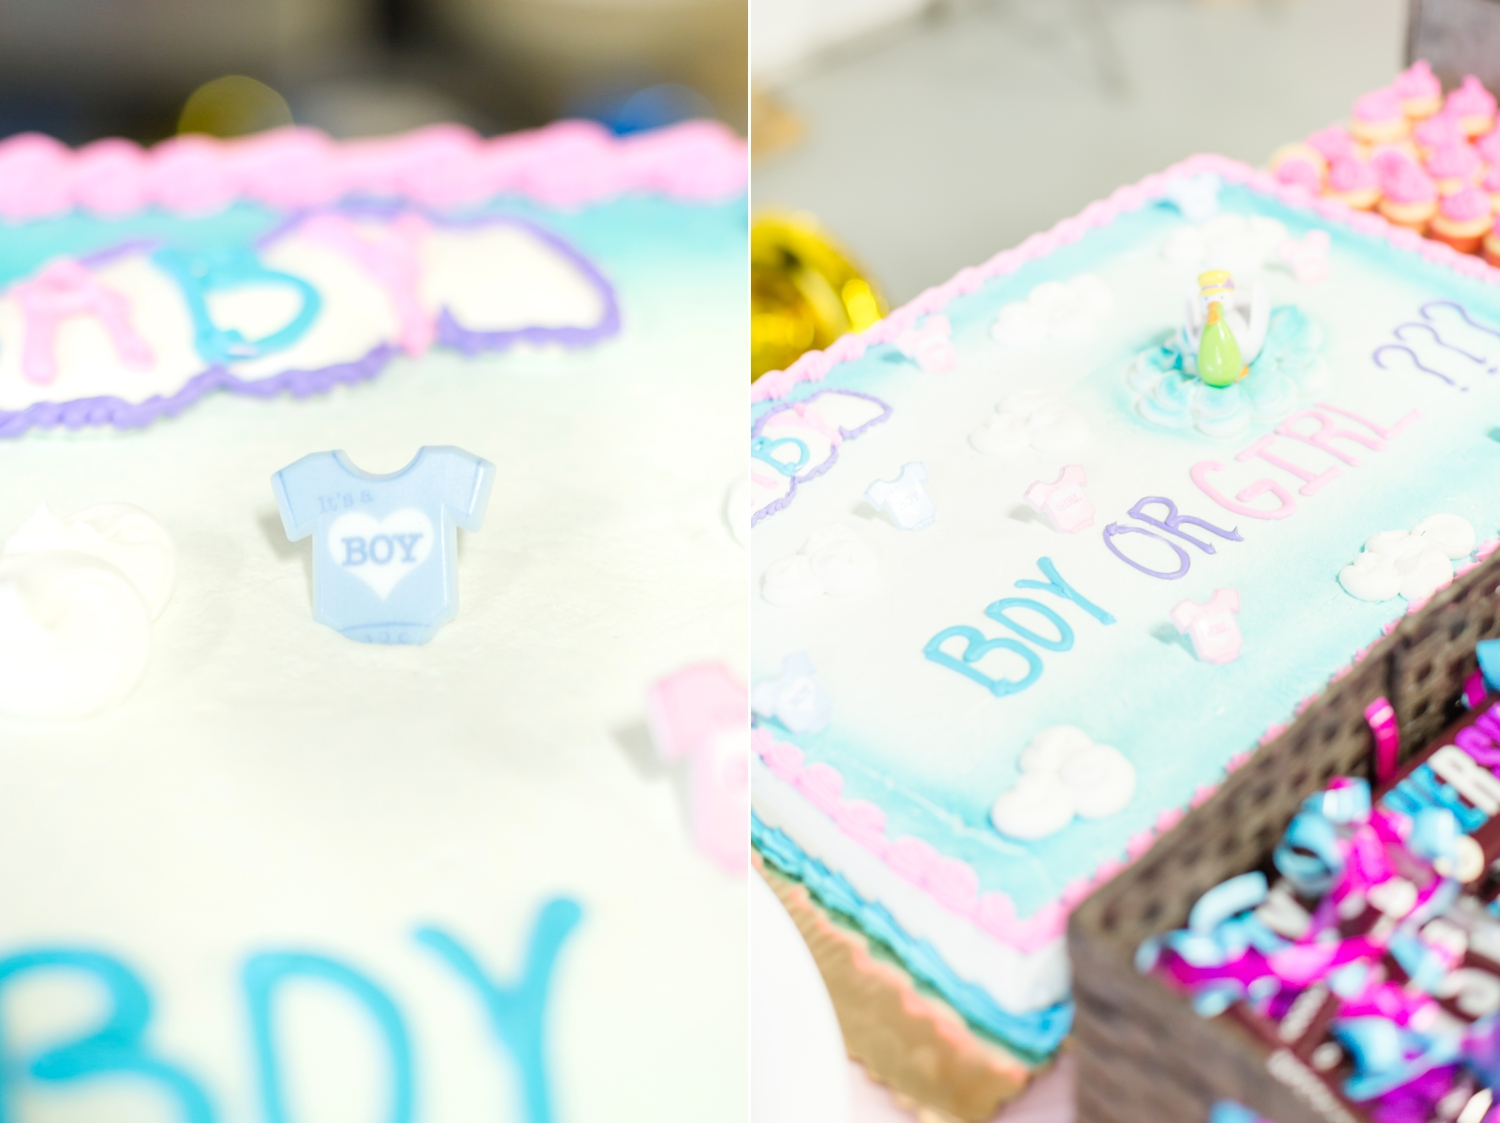 Calvert Gender Reveal-8_Baltimore-Maryland-Gender-Reveal-Maternity-photographer-anna-grace-photography-photo.jpg